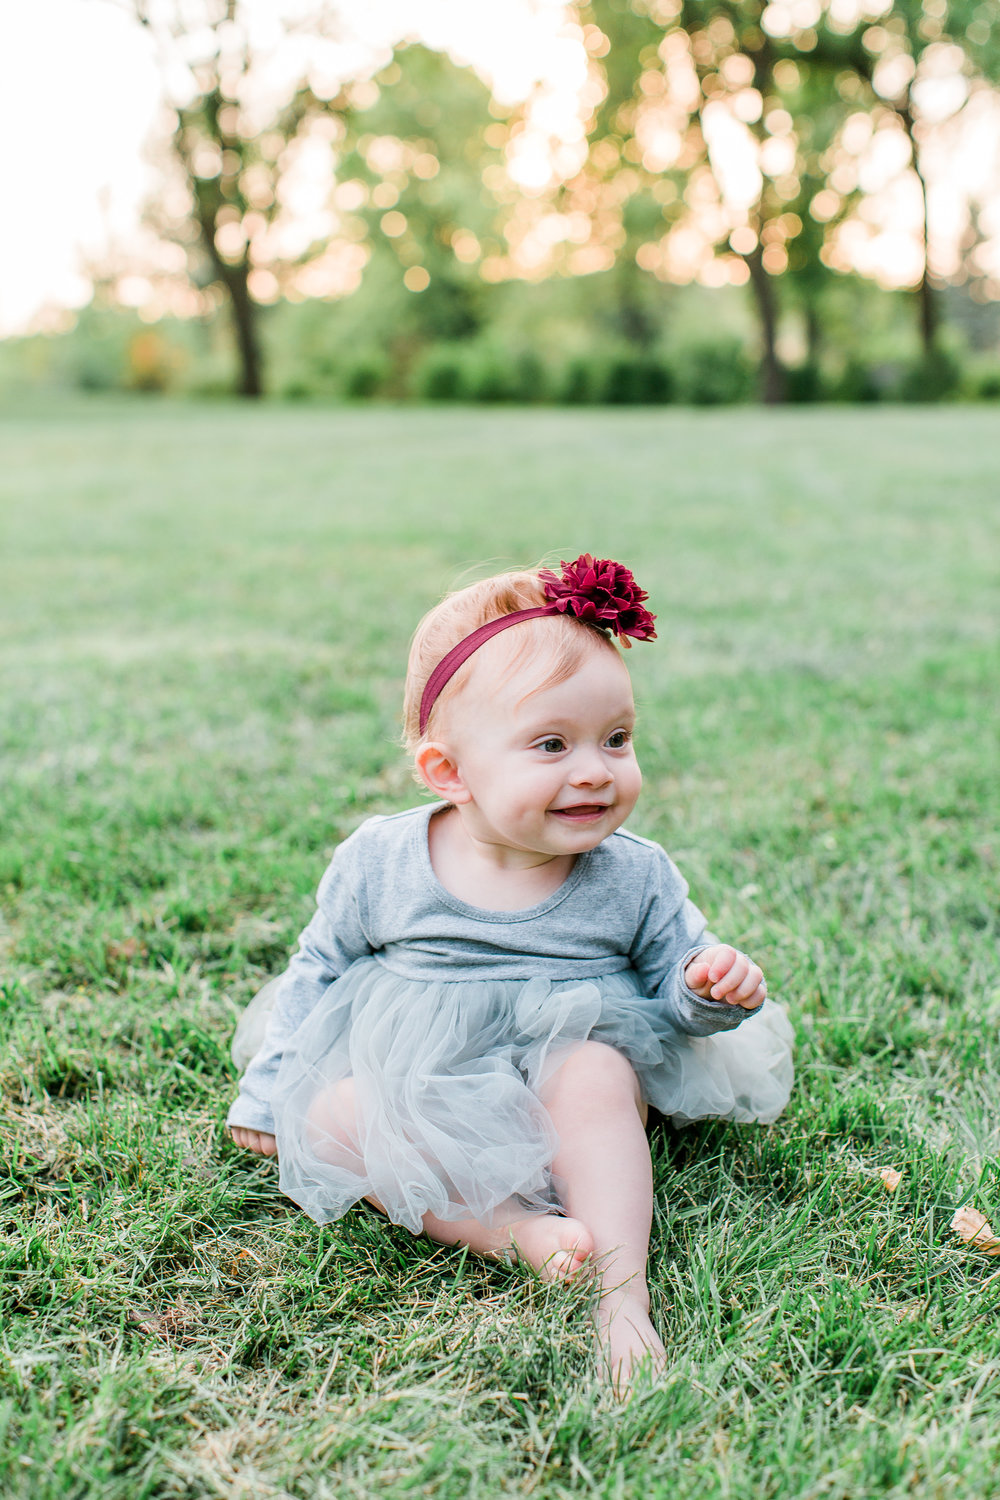 One year old girl in gray tutu dress and burgundy bow in the grass Minnesota family photographer Mallory Kiesow Photography